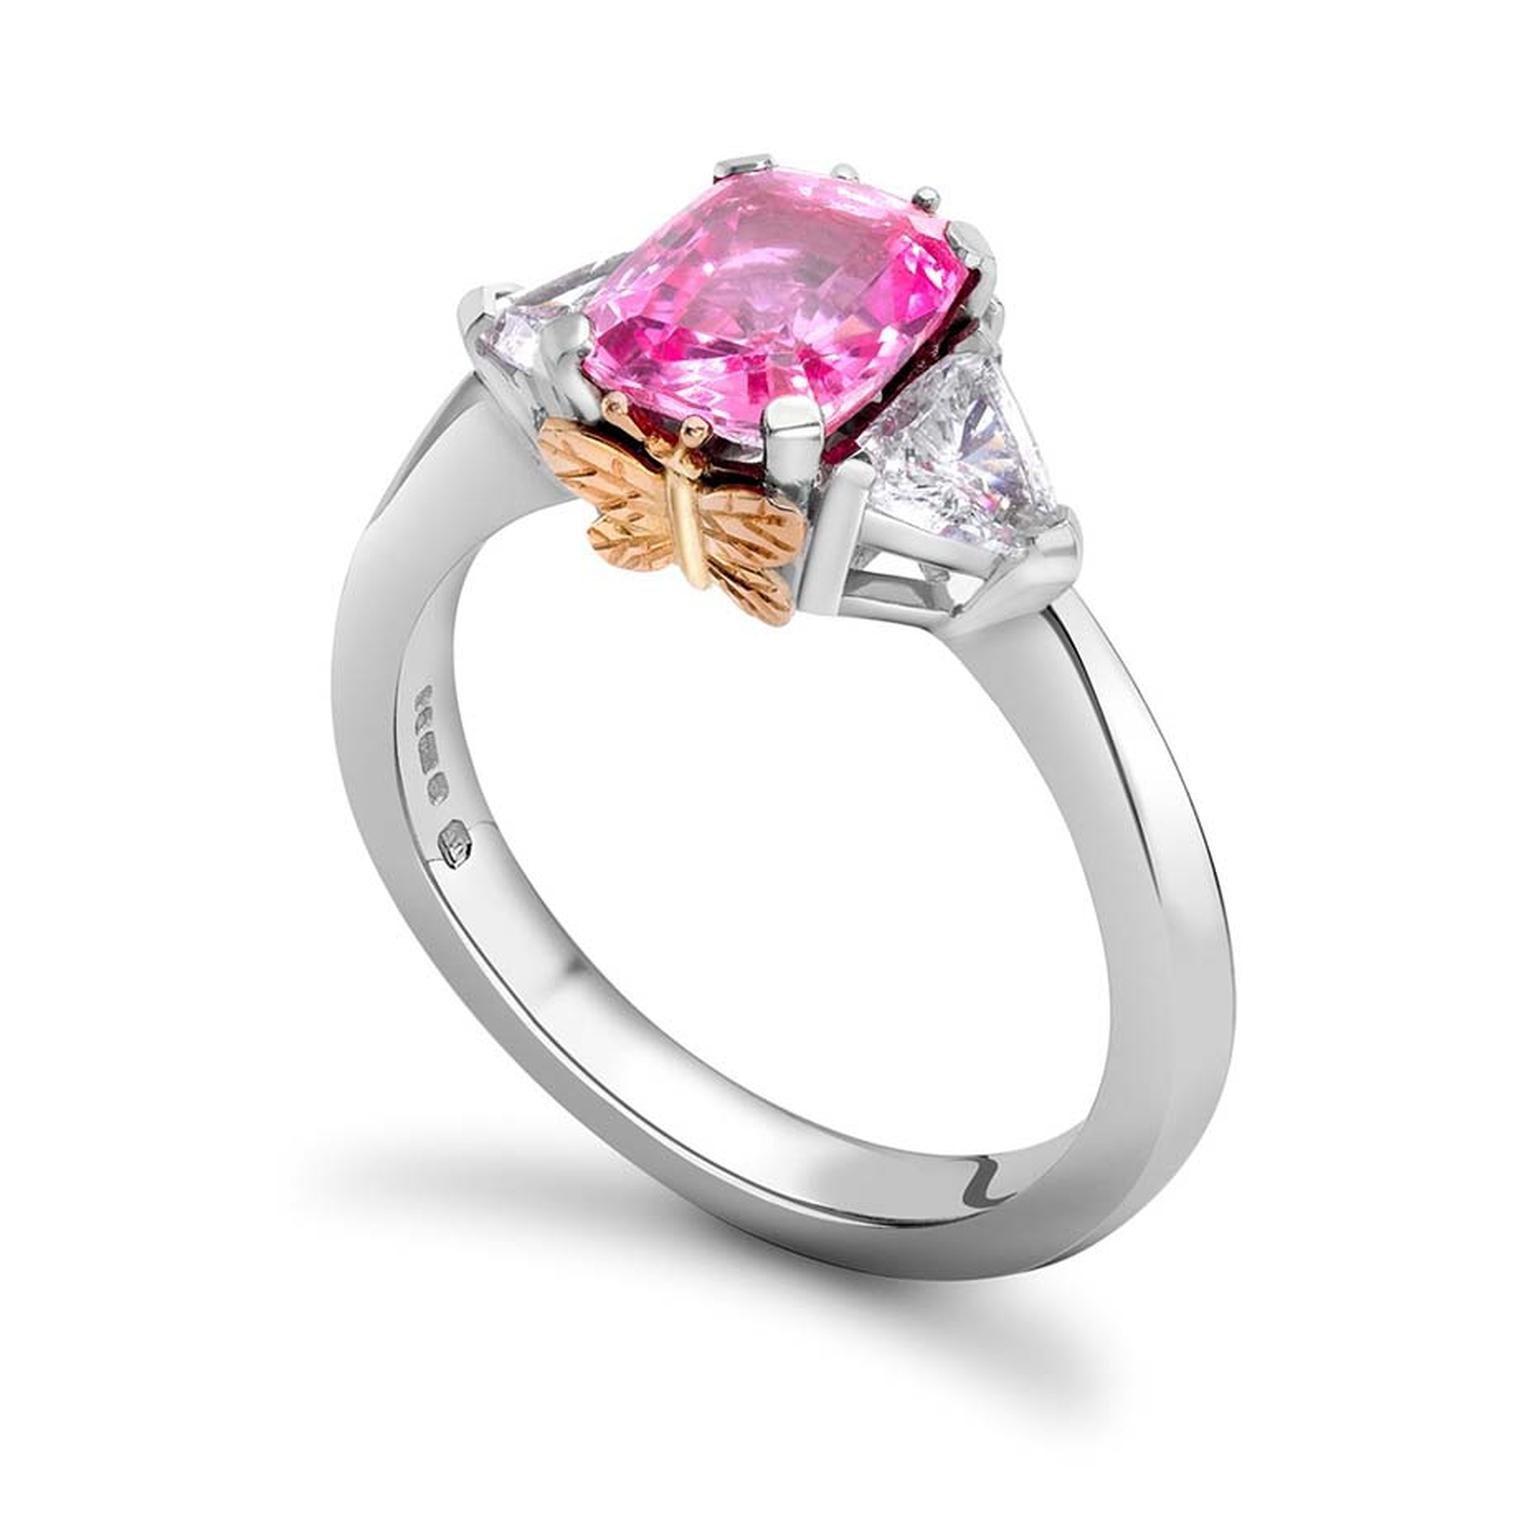 Theo Fennell pink sapphire and diamond Butterfly ring in white gold with a pink gold butterfly perched on the side of the centre stone.